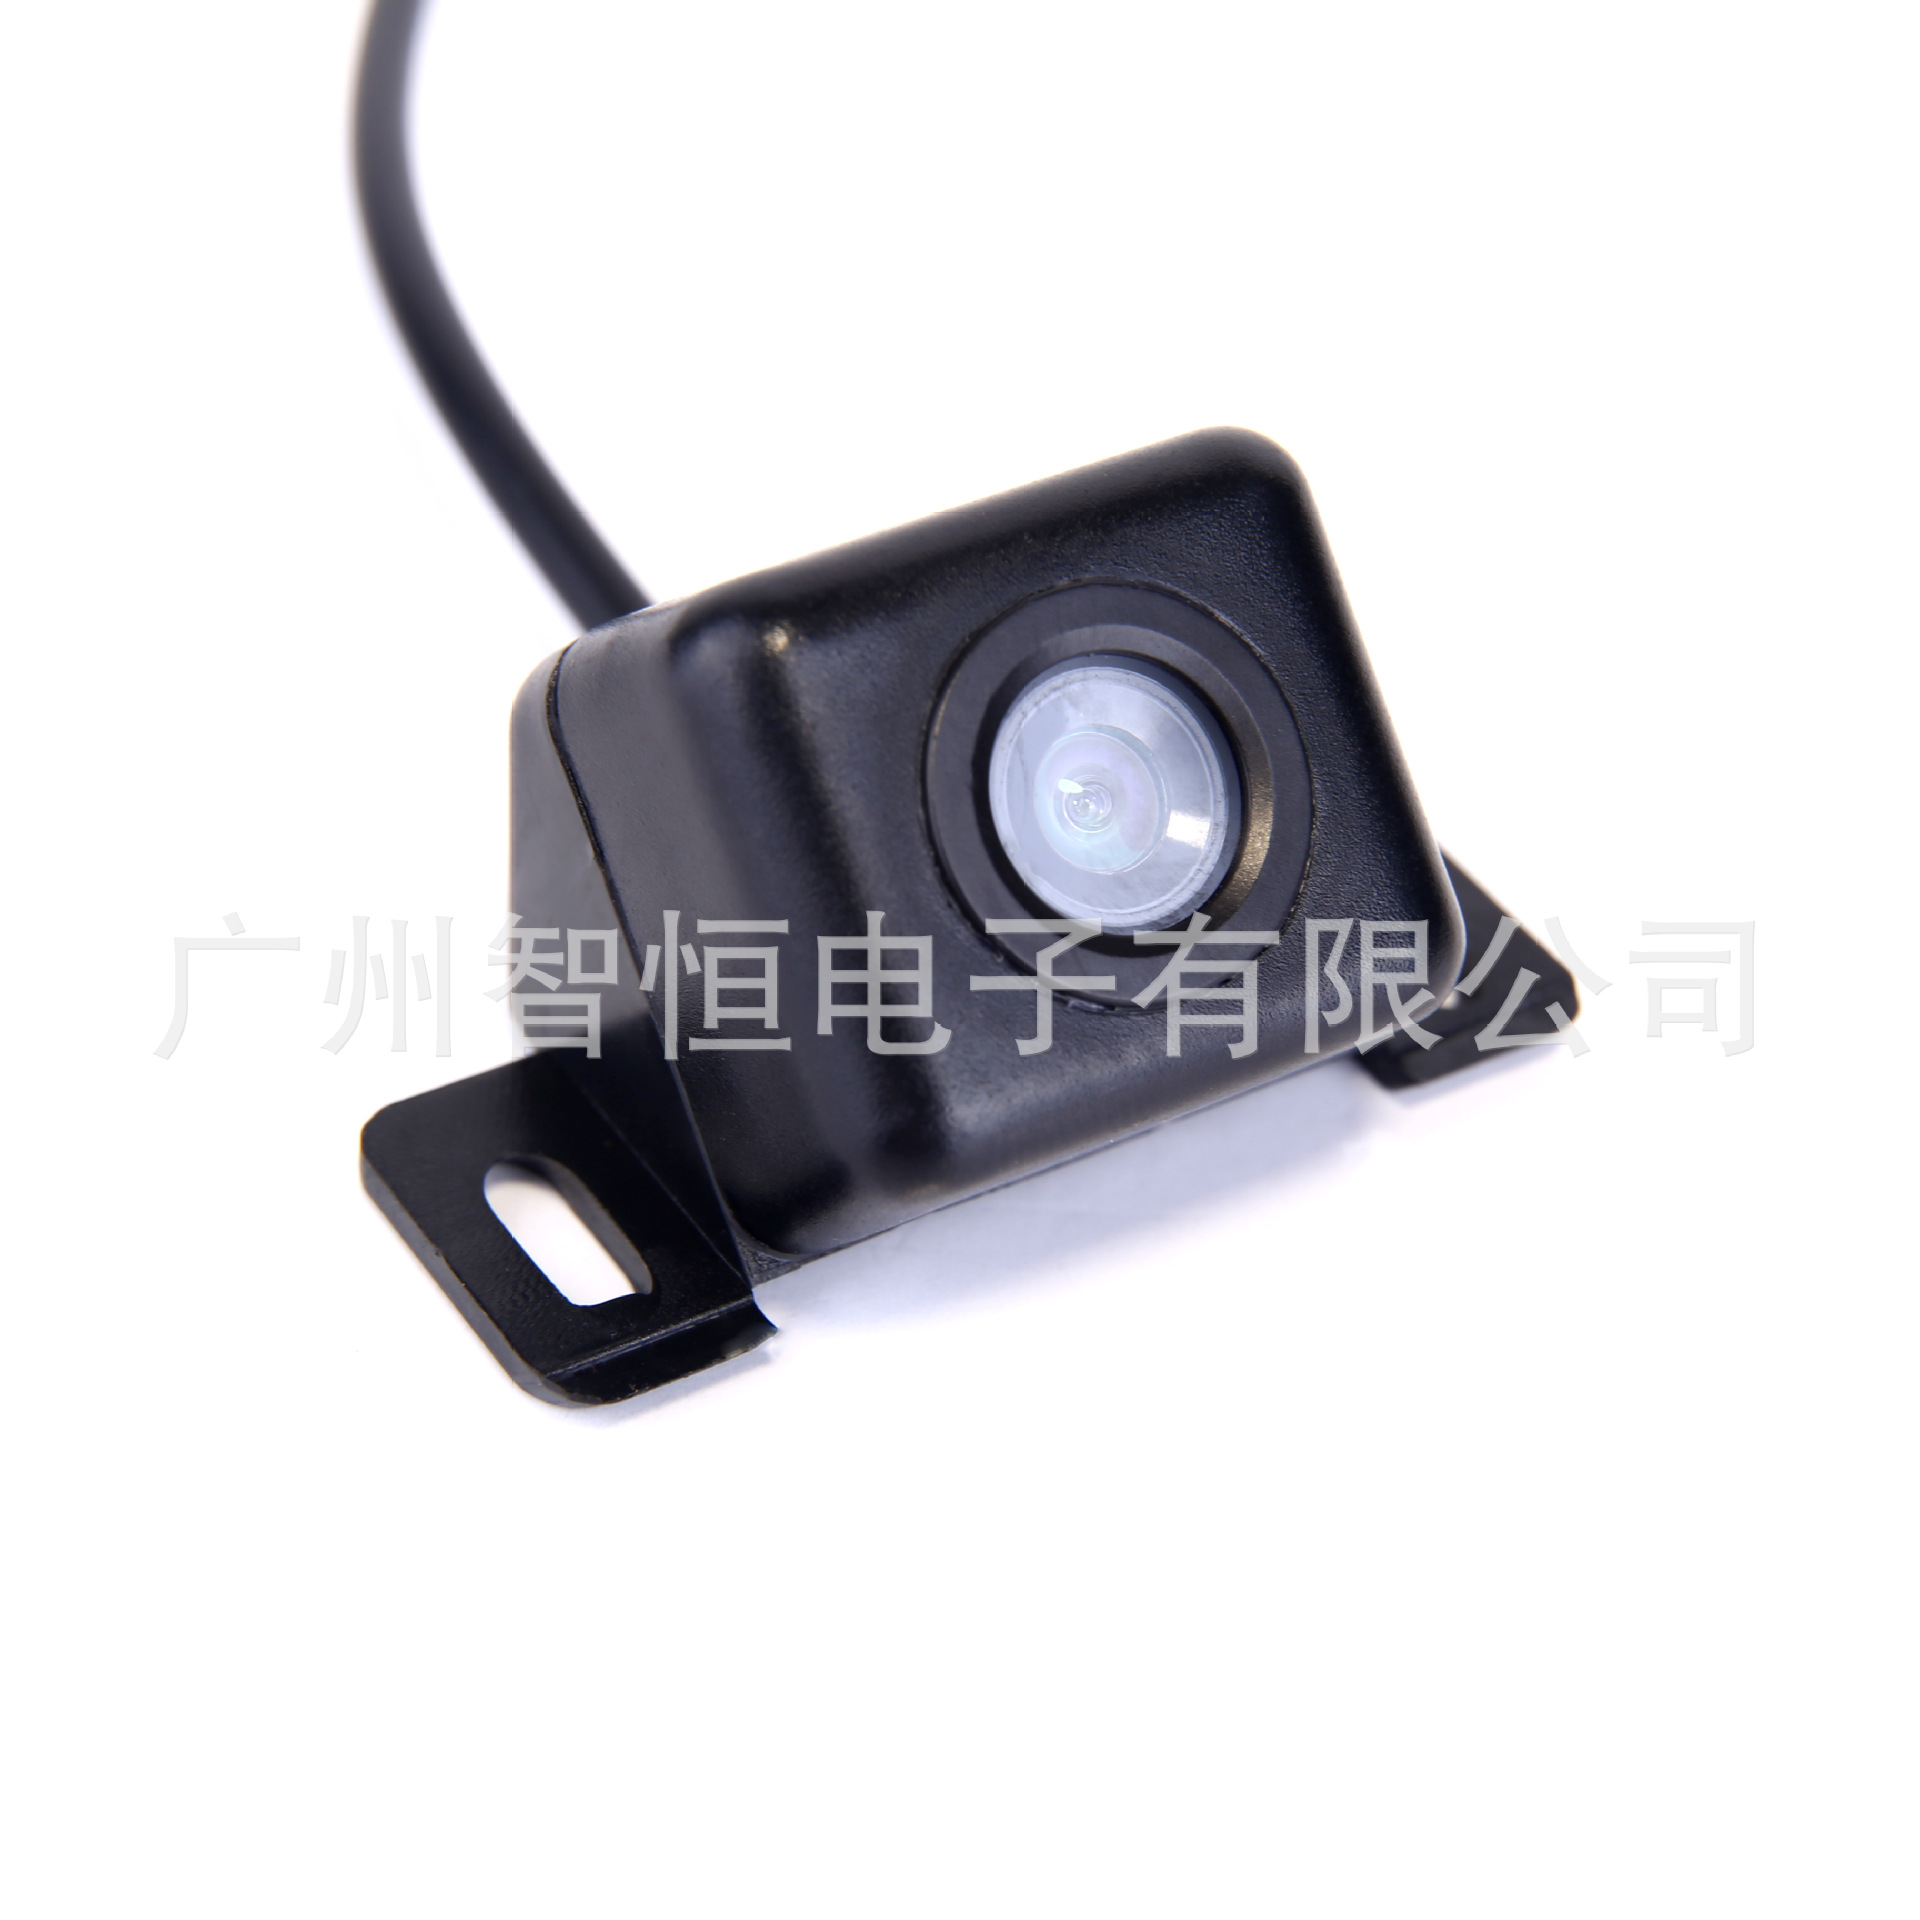 On Board Camera Car Universal Square Plug CCD Reversing Video Navigation Display for High definition Night Vision|Vehicle Camera| |  - title=